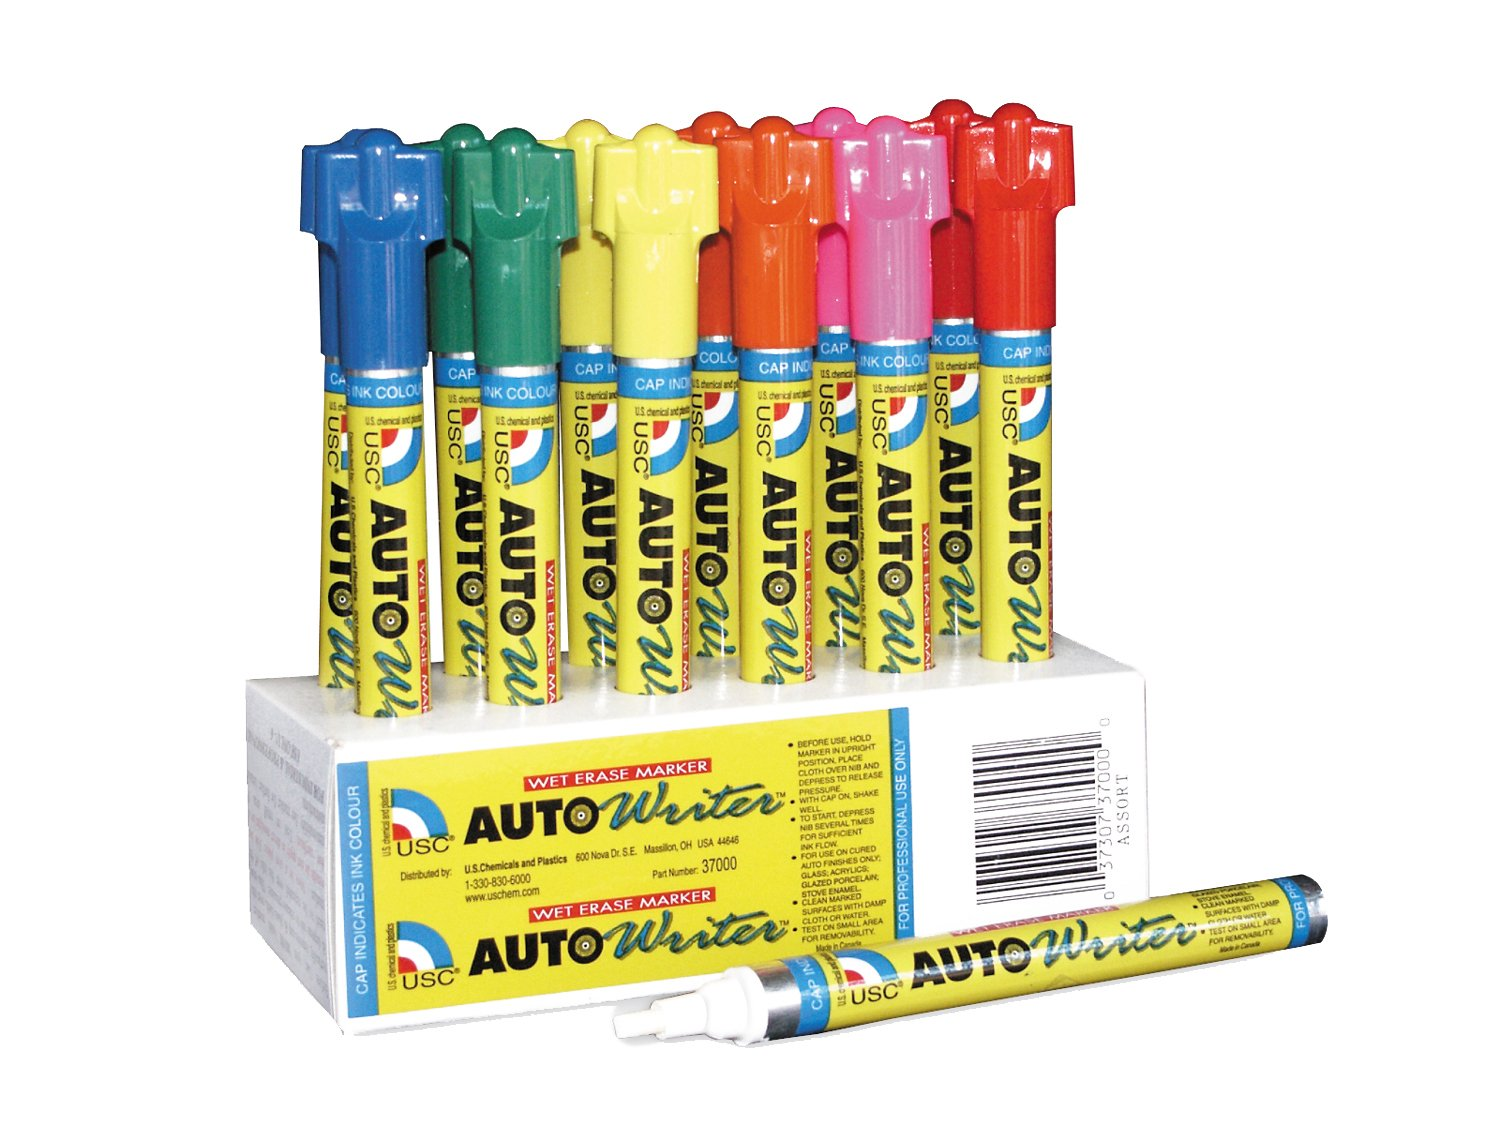 Autowriter Markers Box of 12 Assorted Writing Pens by US Chemical